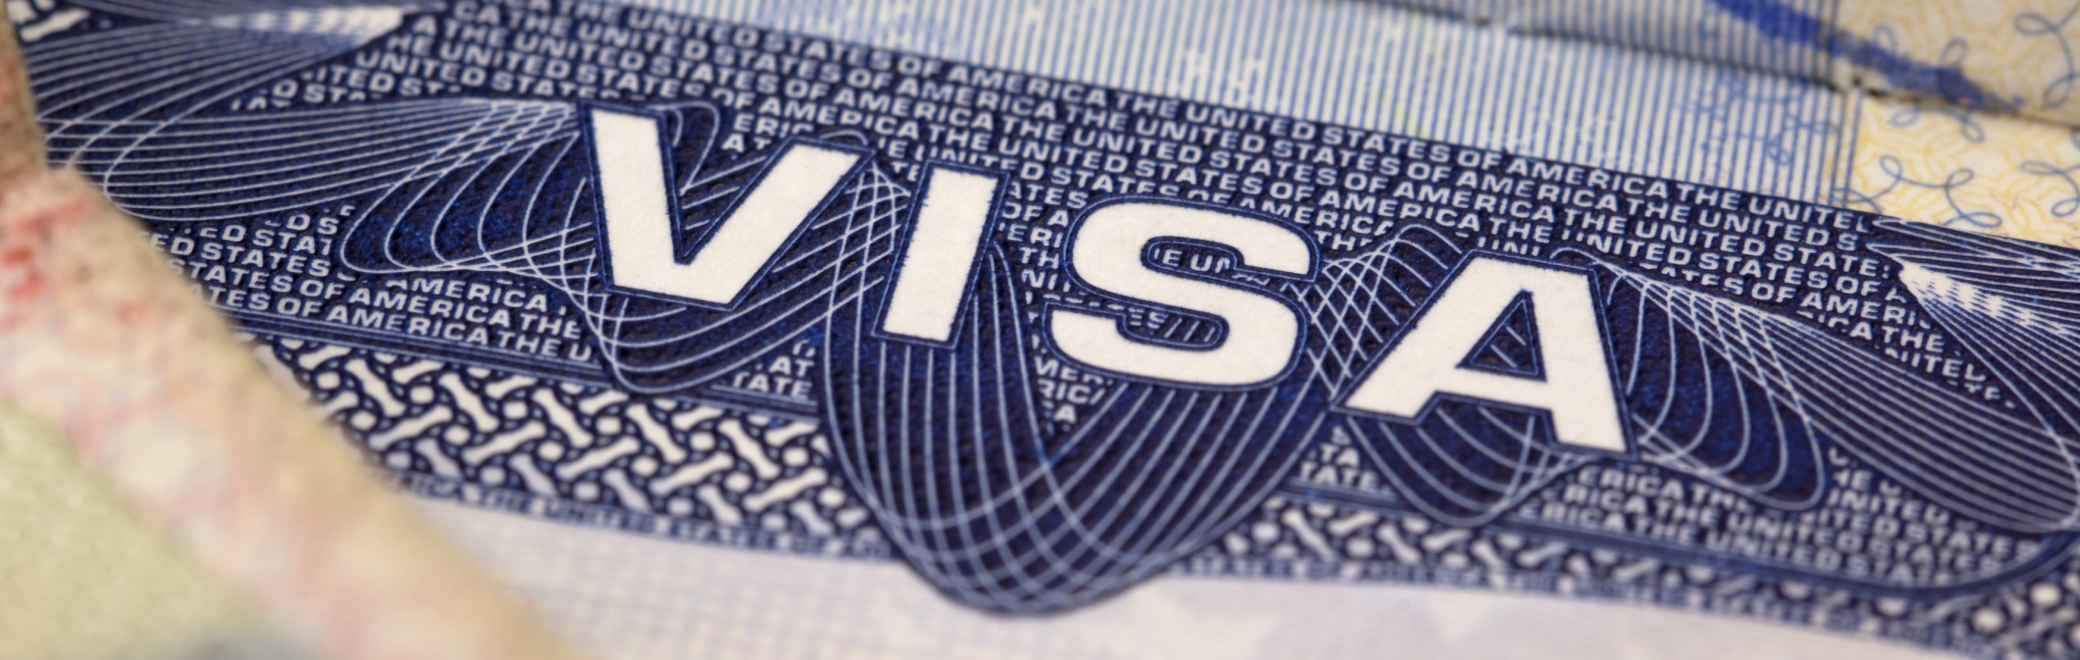 apply for e-2 visa